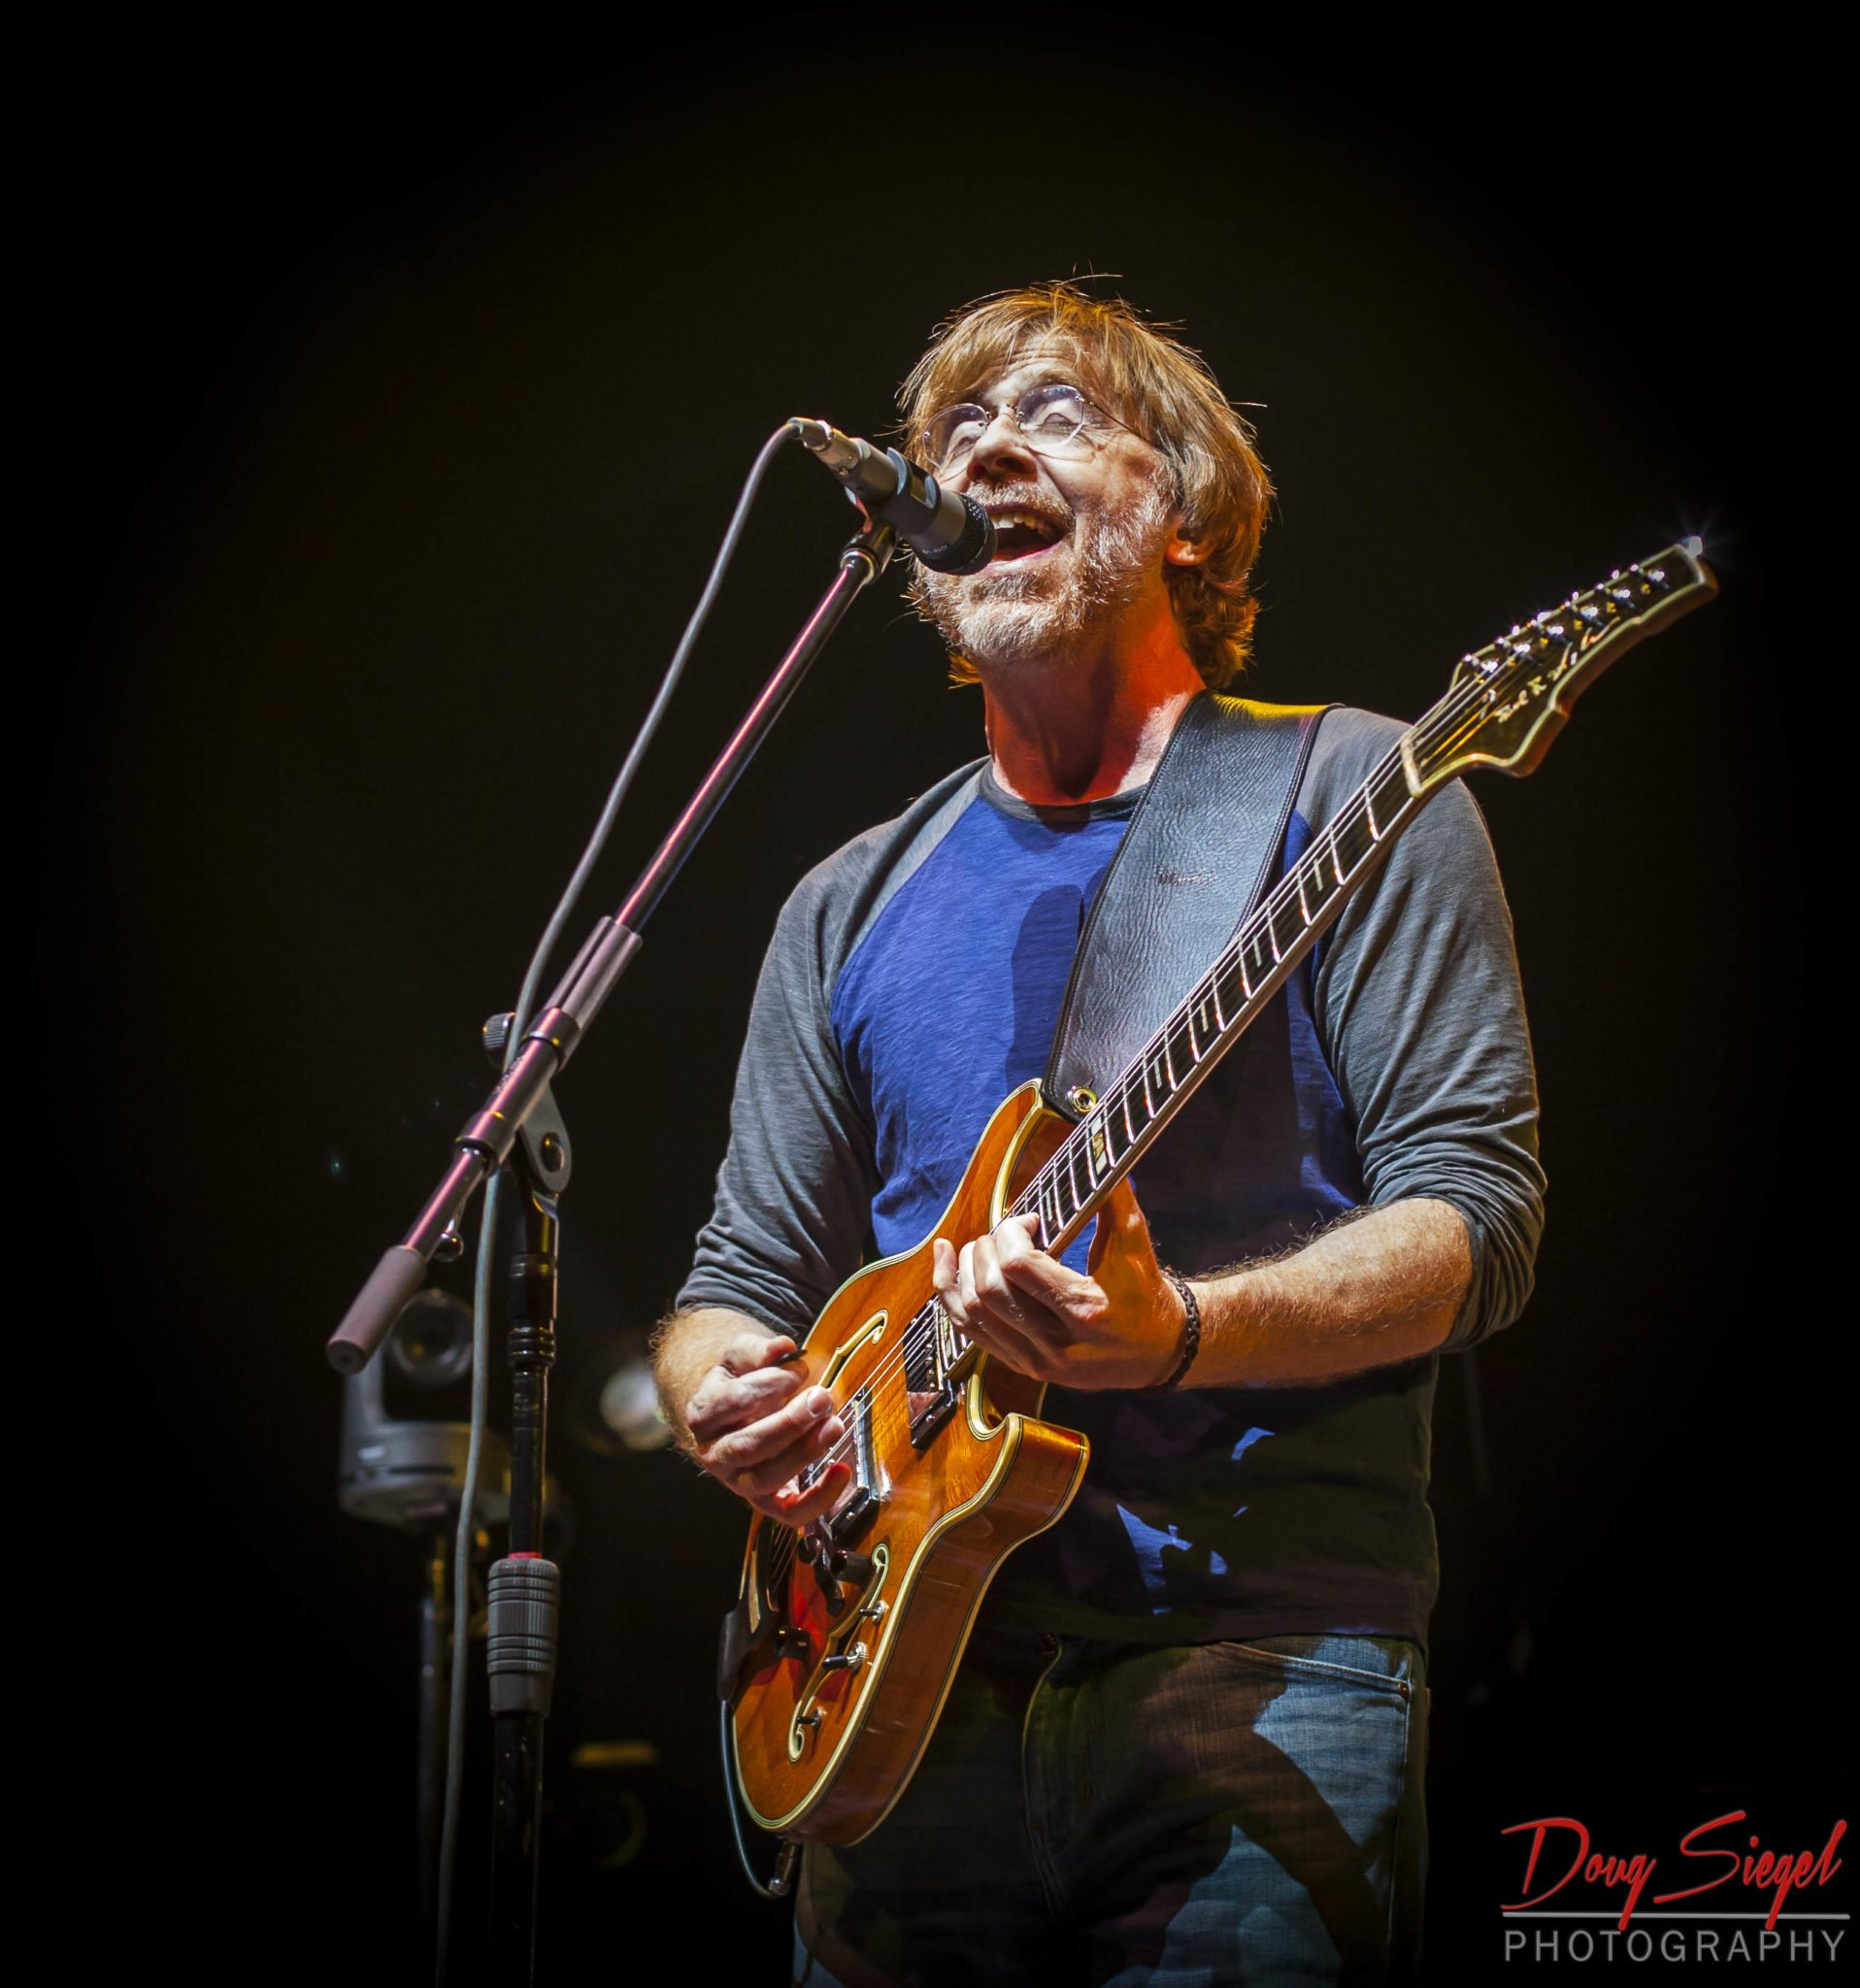 Phish Makes Triumphant Return To Dayton After 20 Years With Jam